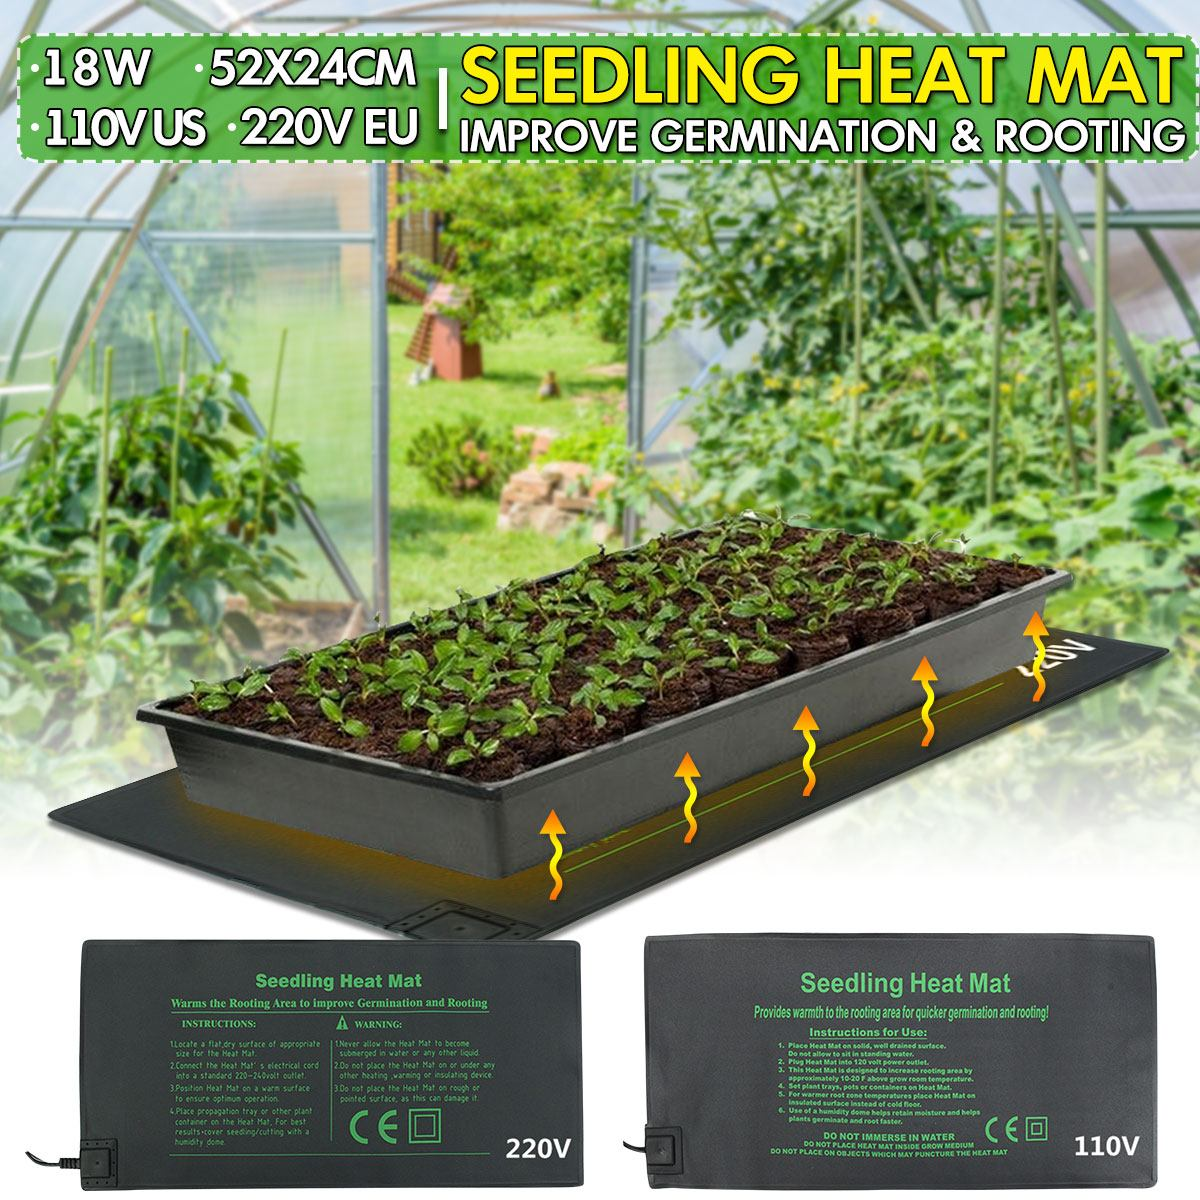 Seedling Heat Mat Plant Seed Germination Propagation Clone Starter Warm Pad Mat 24x52cm Vegetable Flowers Garden Tool Supplies